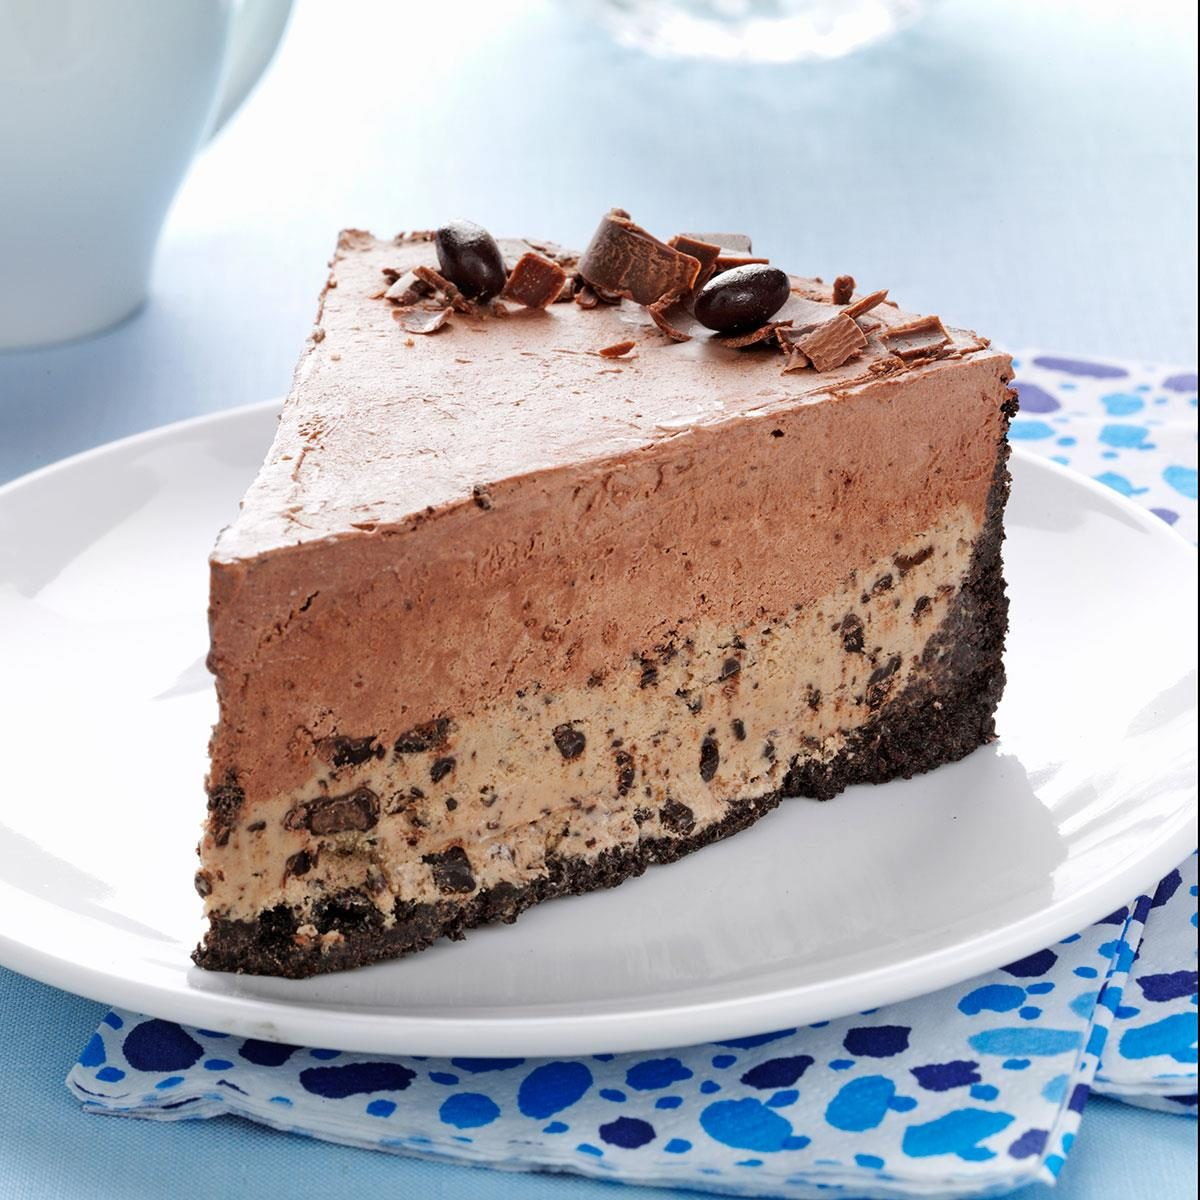 Chocolate Coffee Bean Ice Cream Cake